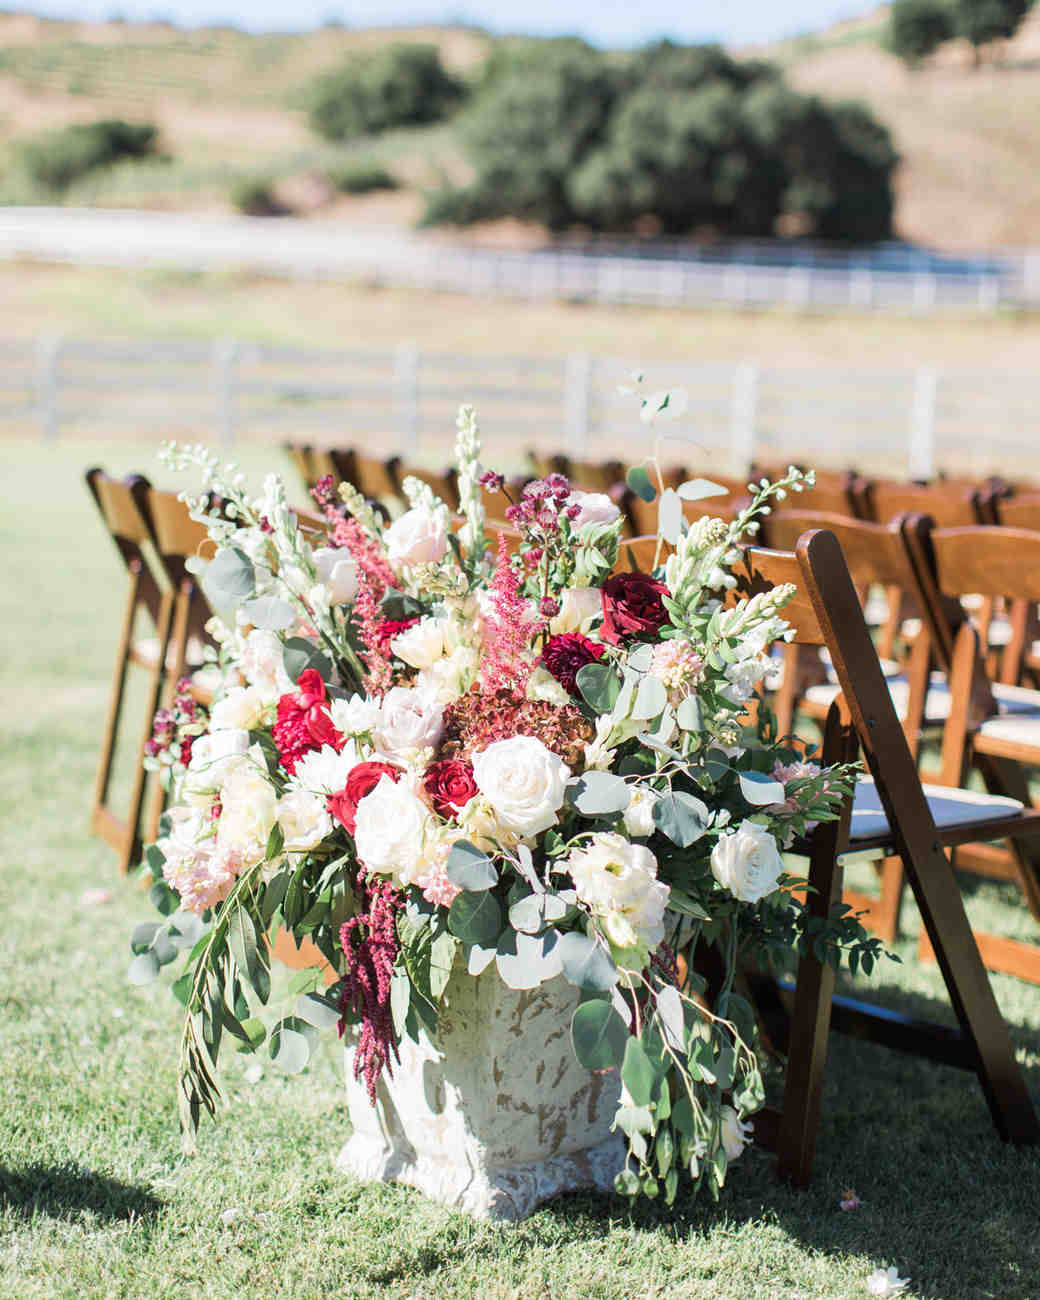 last row ceremony chair decorations white and red floral arrangement in large vessel